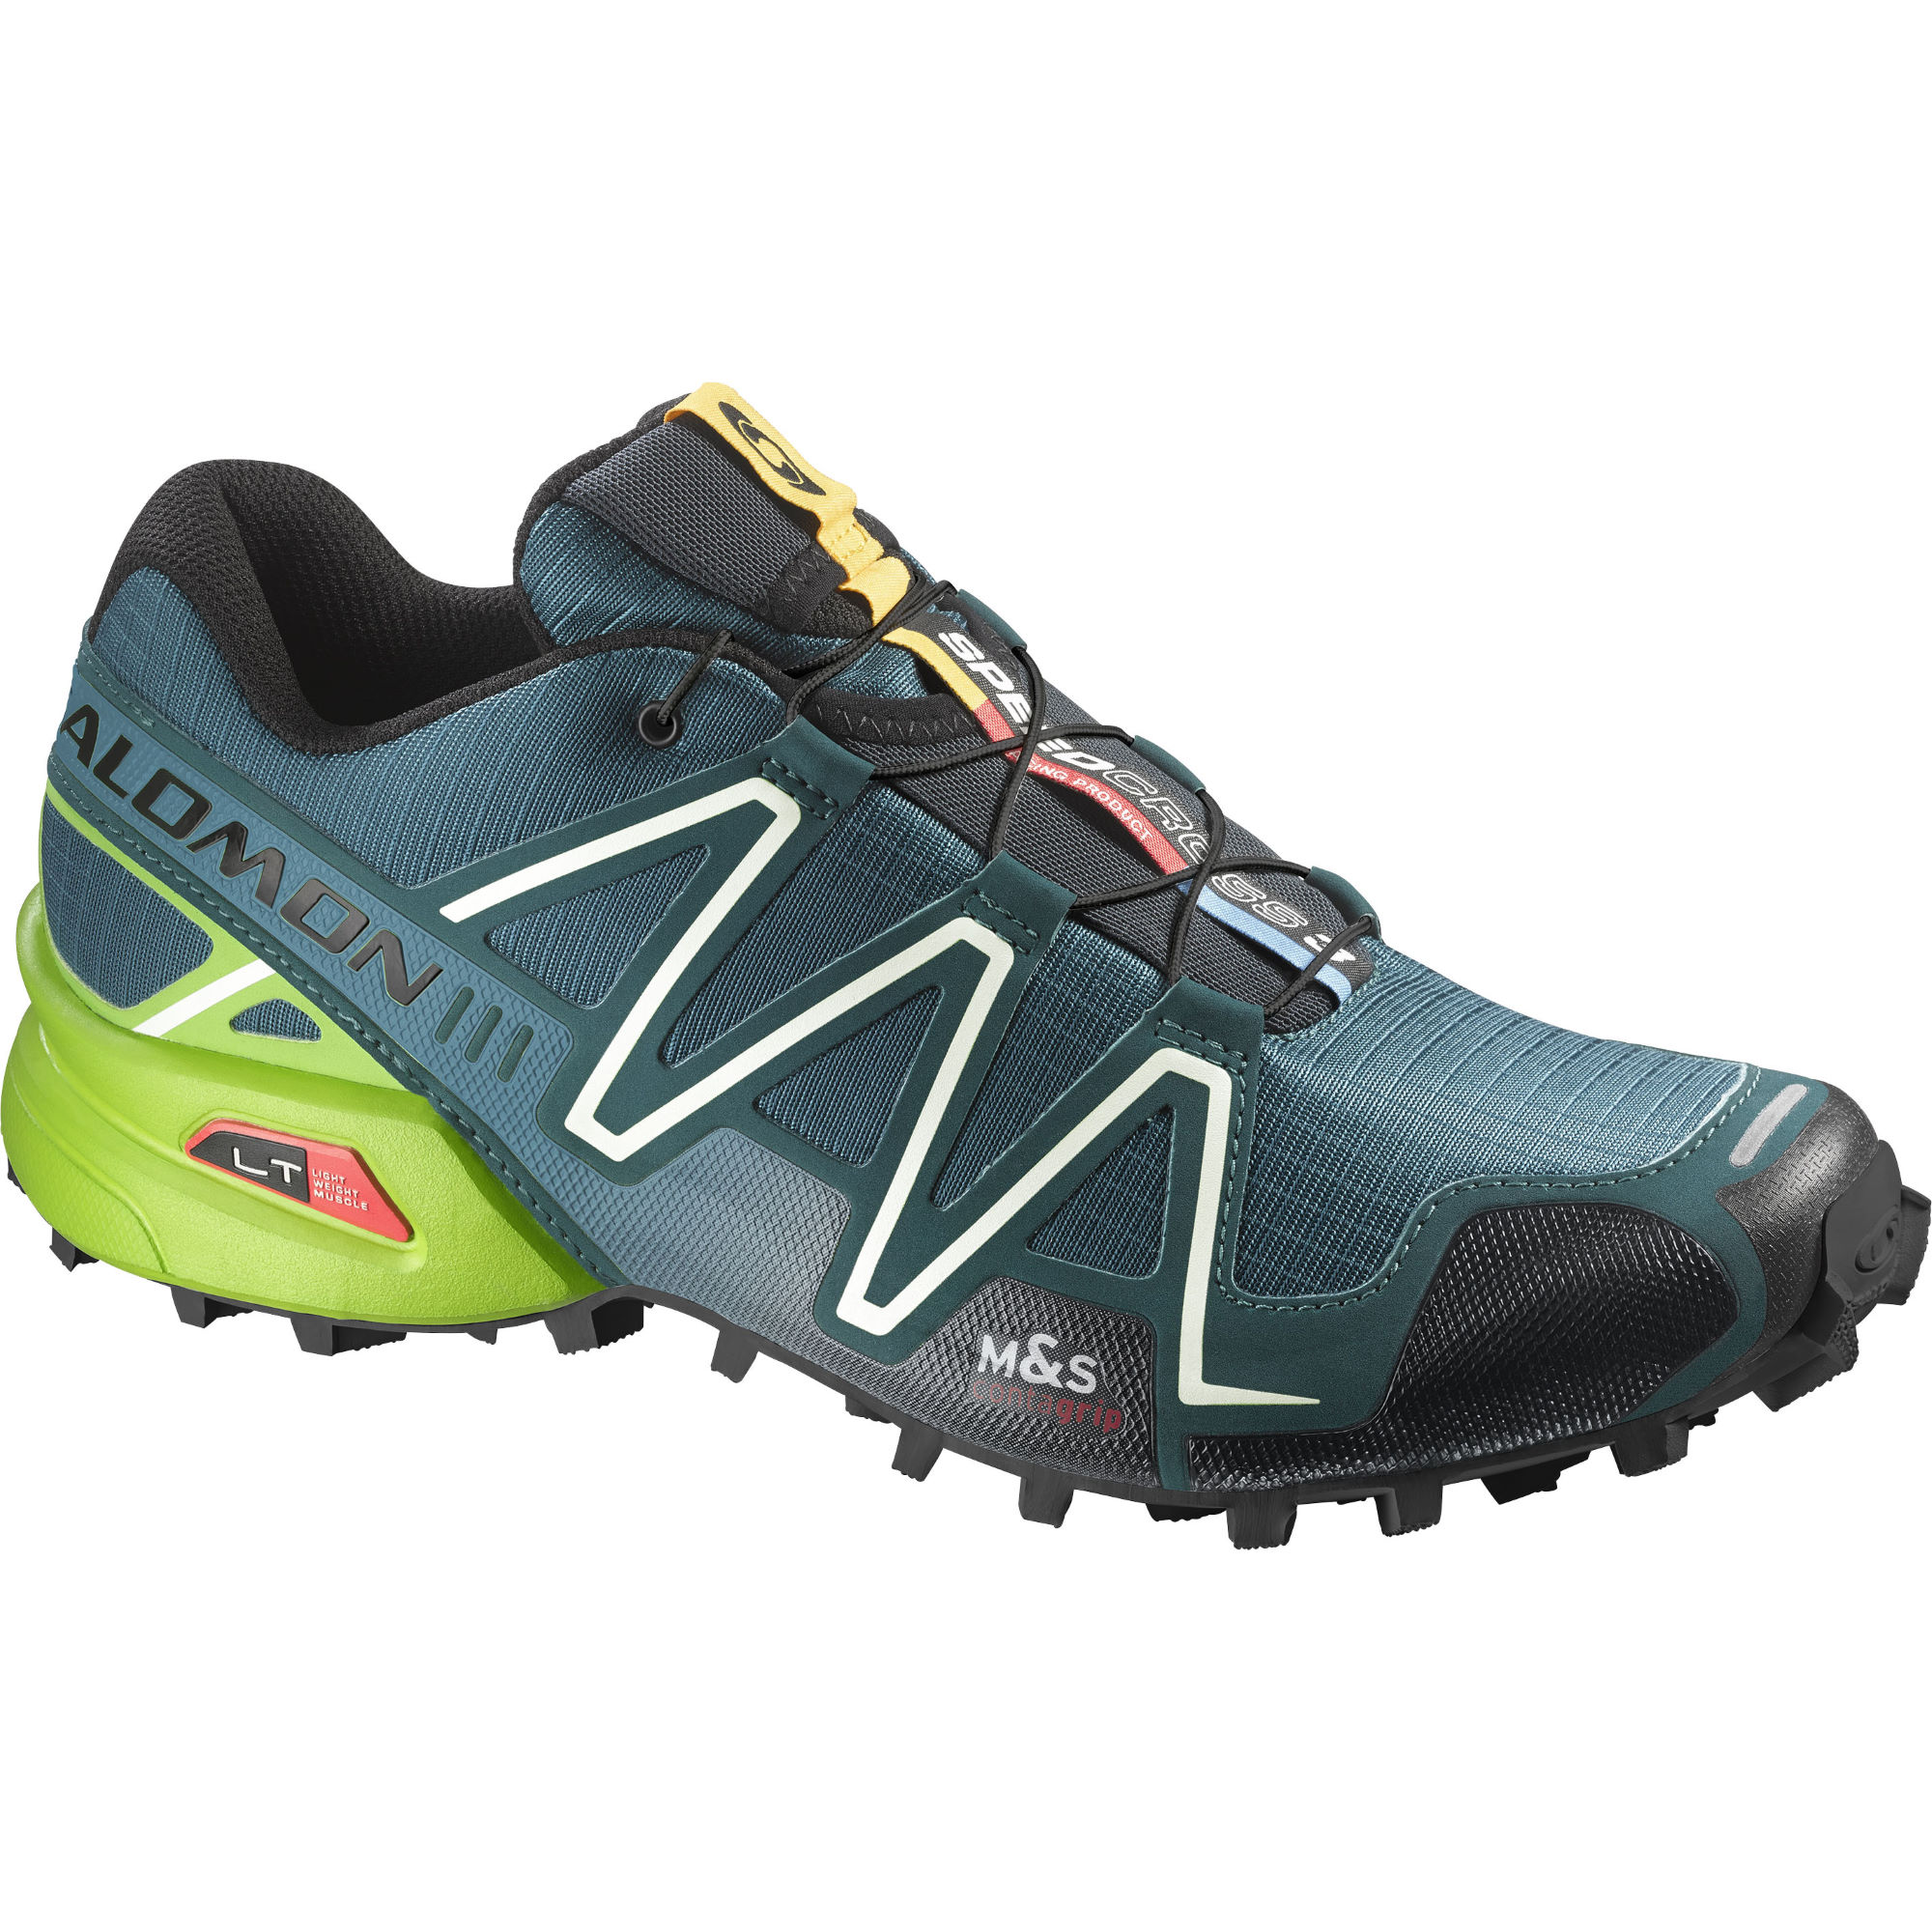 wiggle salomon speedcross 3 blue shoes ss15 offroad running shoes. Black Bedroom Furniture Sets. Home Design Ideas